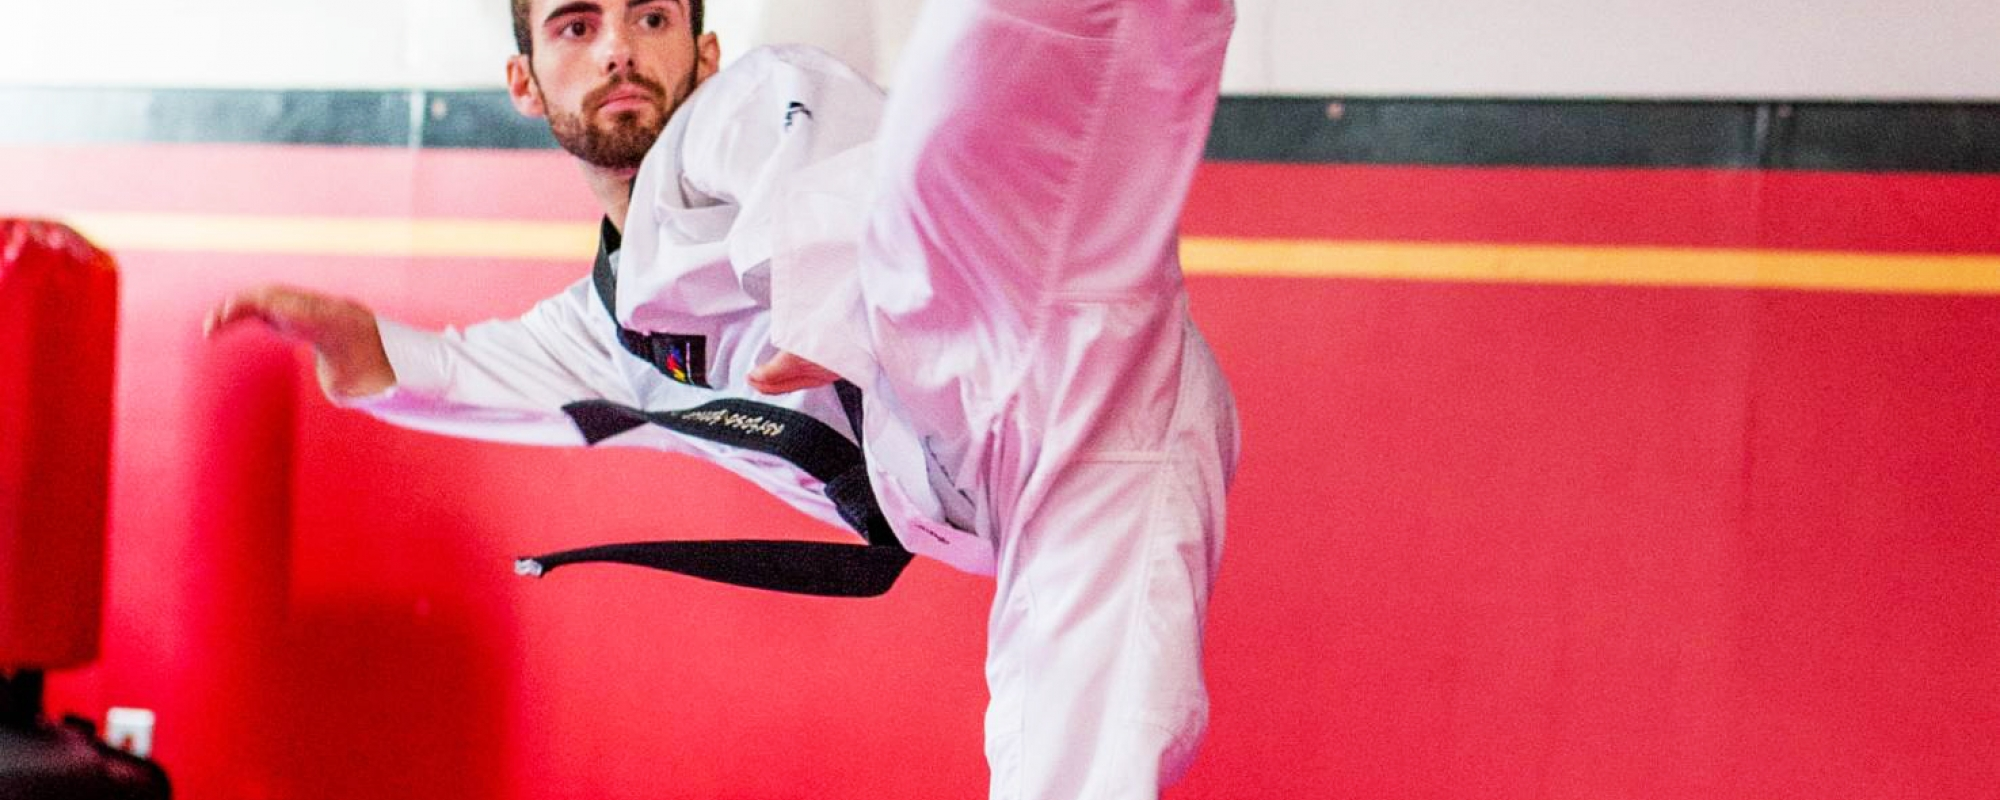 Anthony in a taekwondo pose